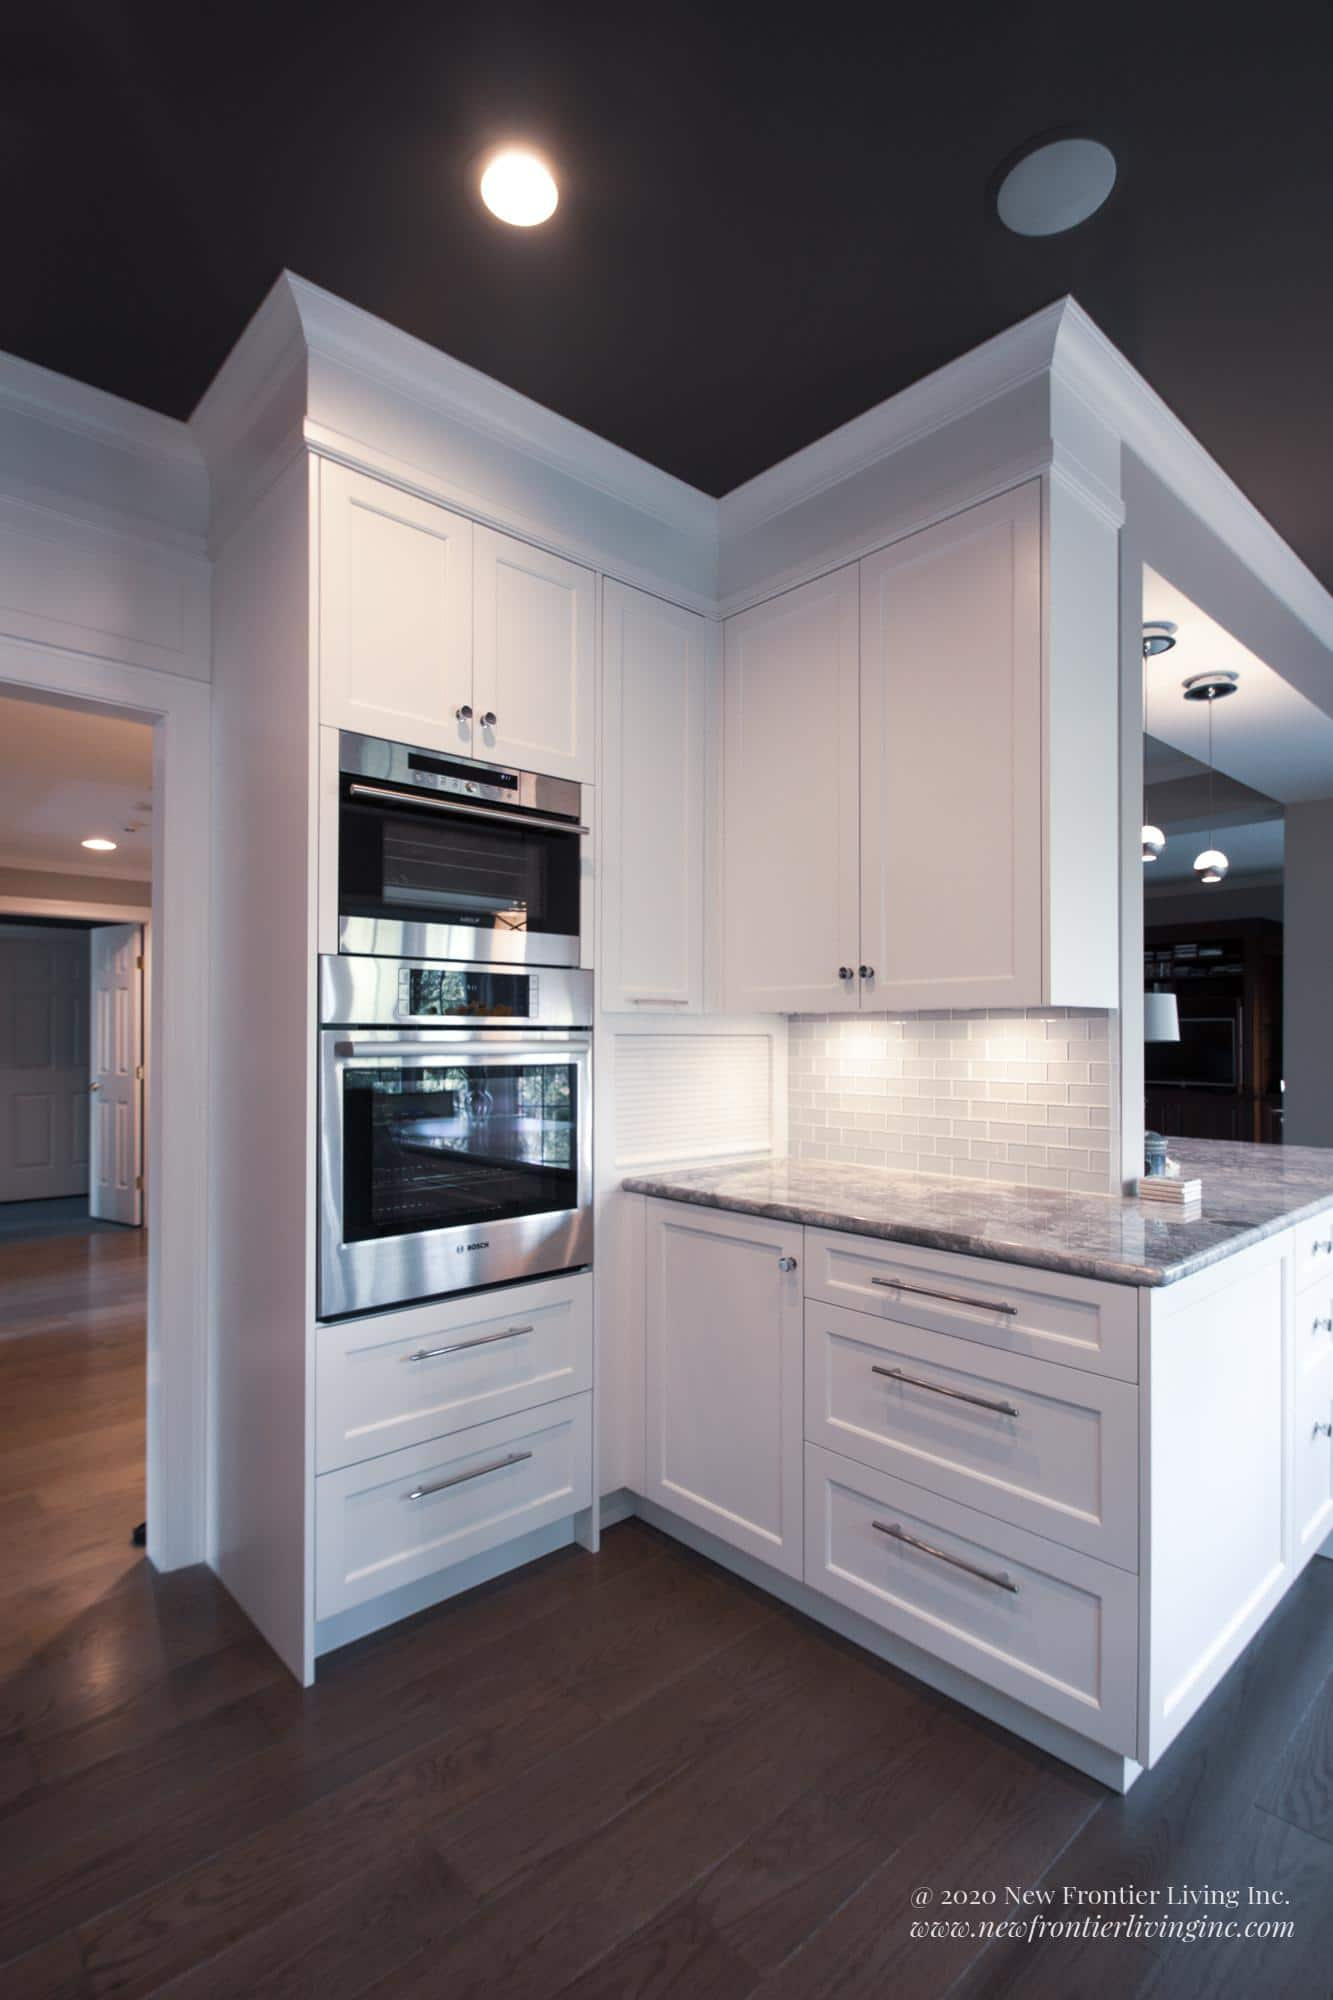 White kitchen cabinetry on the corner with oven and microwave